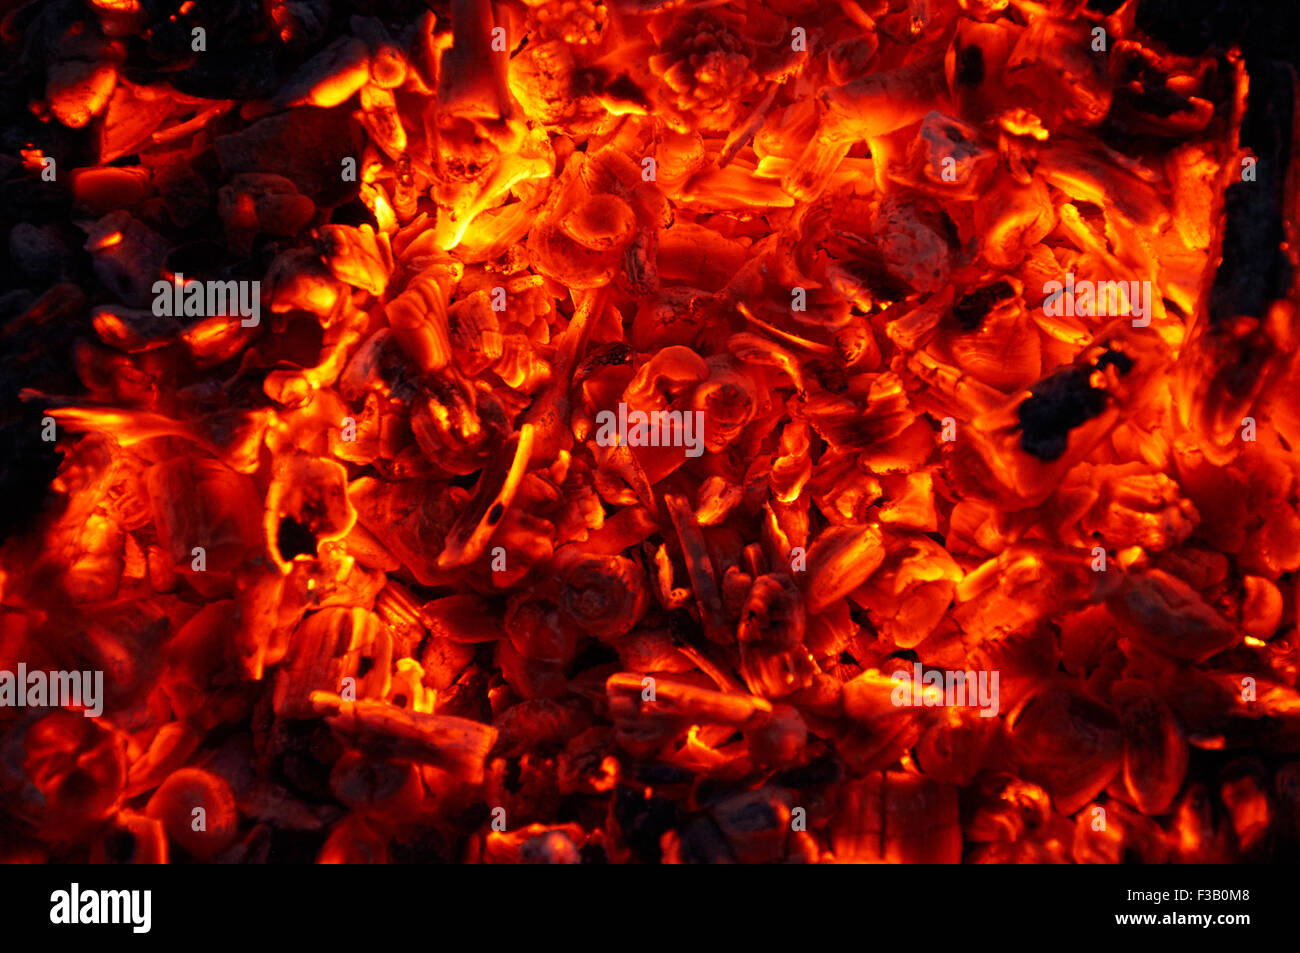 Smoldering charcoal. It is bright and hot. - Stock Image